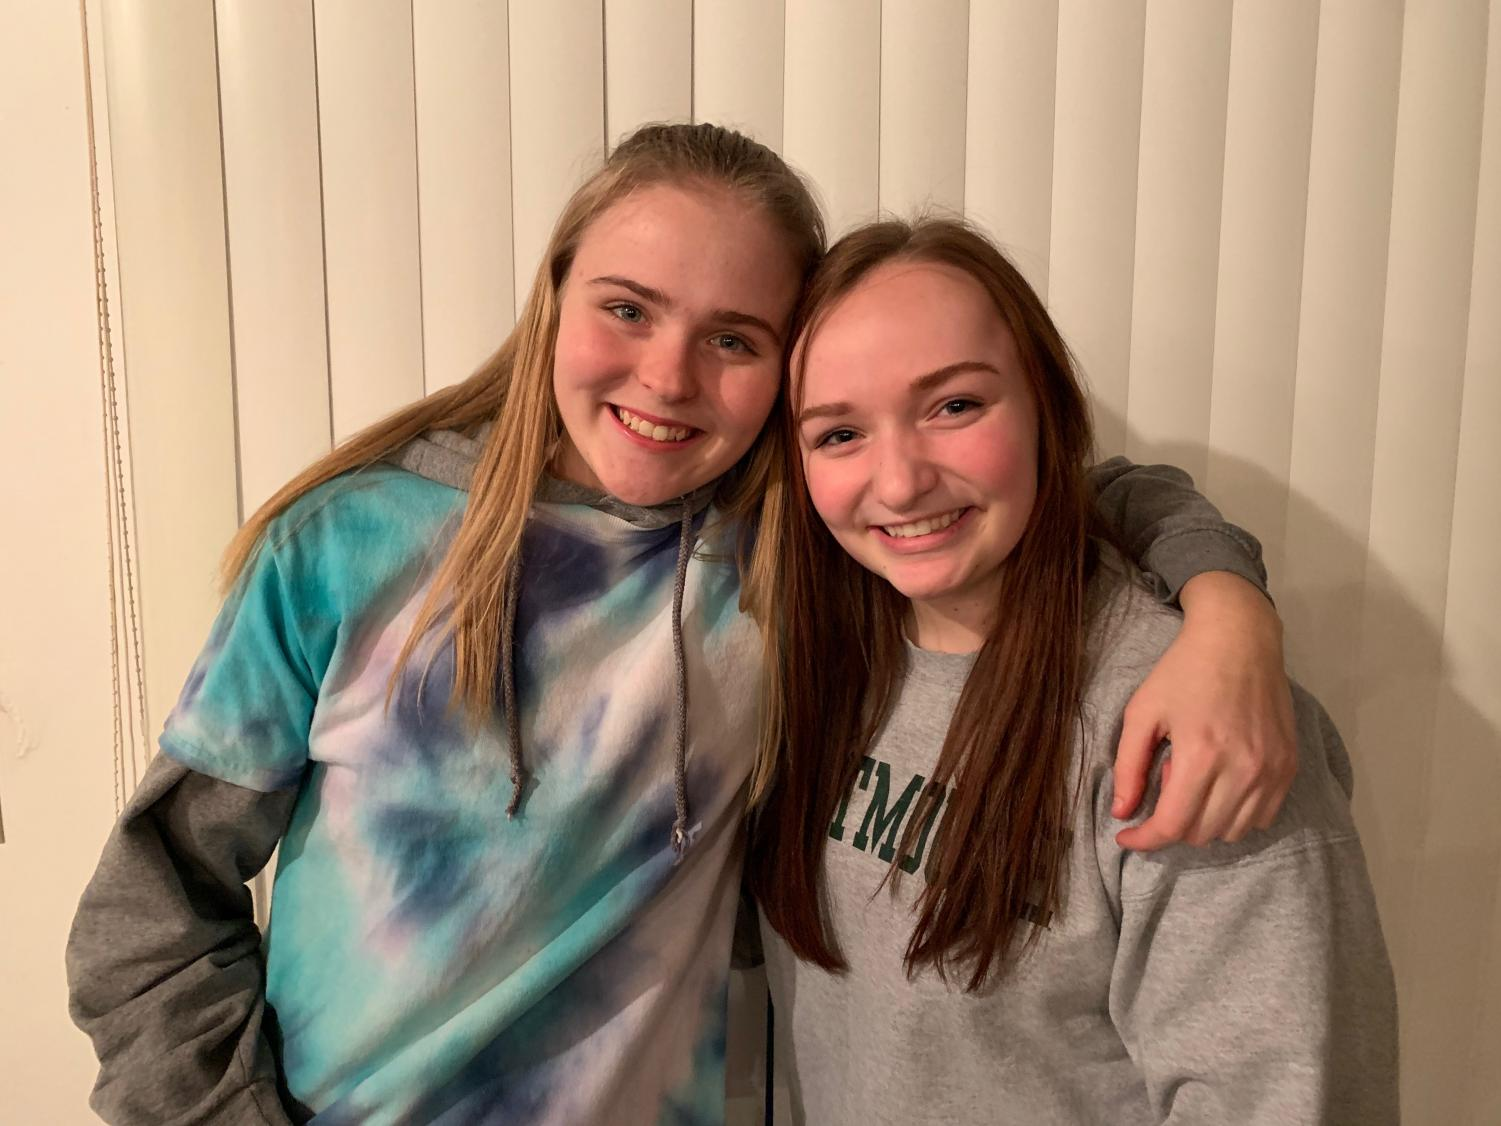 """We both joined the tennis team freshman year. We were skeptical to join at first but it ended up being so much fun. It's now our favorite sports season. Our team works so good together and have created a lot of chemistry over the years."""